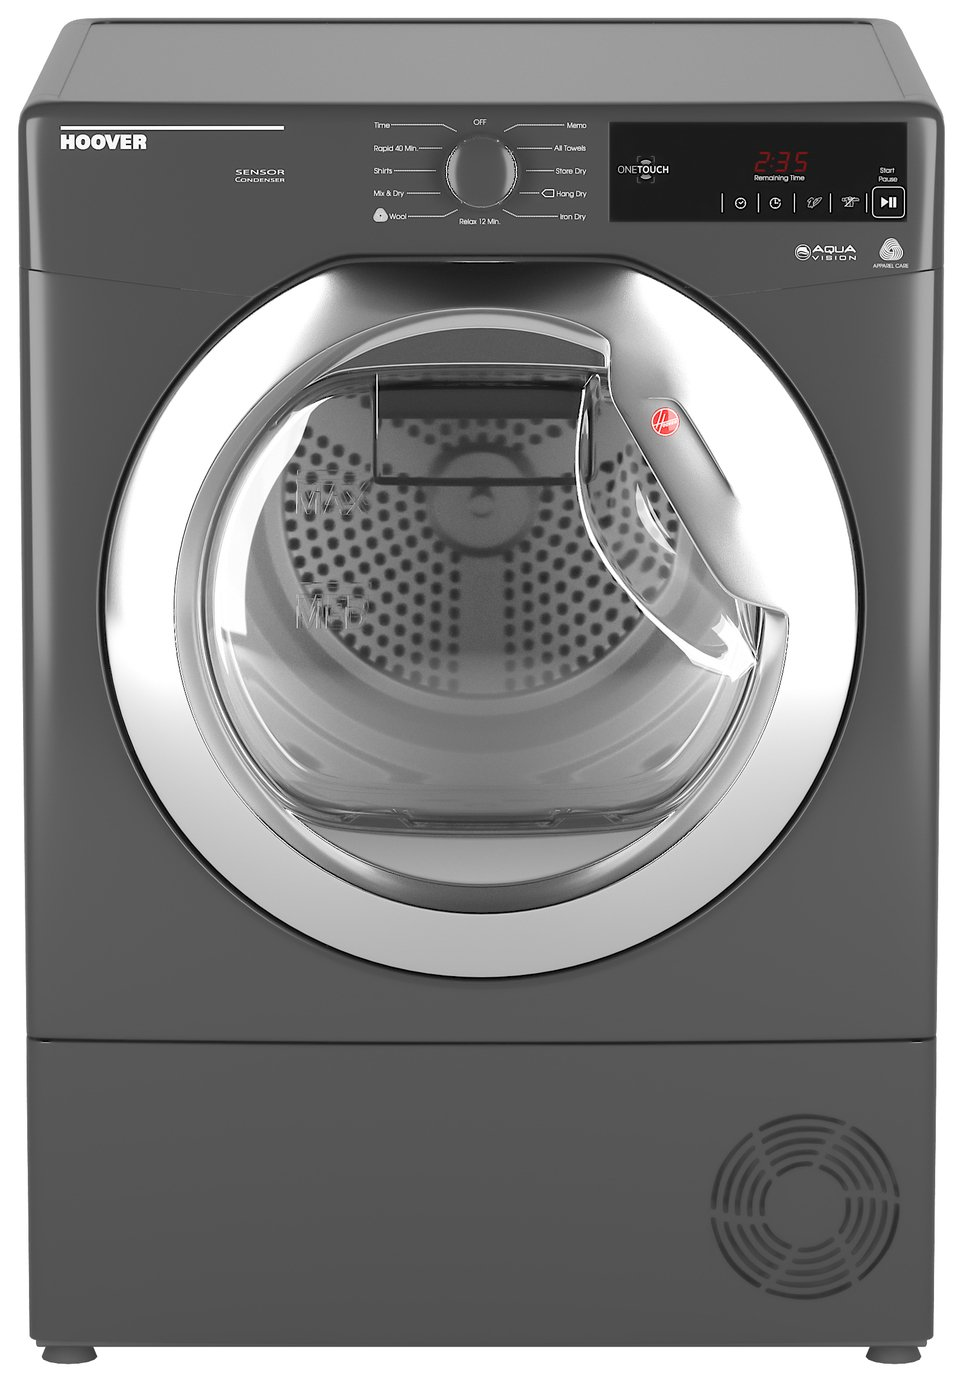 Hoover DX C8TCER 8KG Condenser Tumble Dryer - Graphite from Hoover